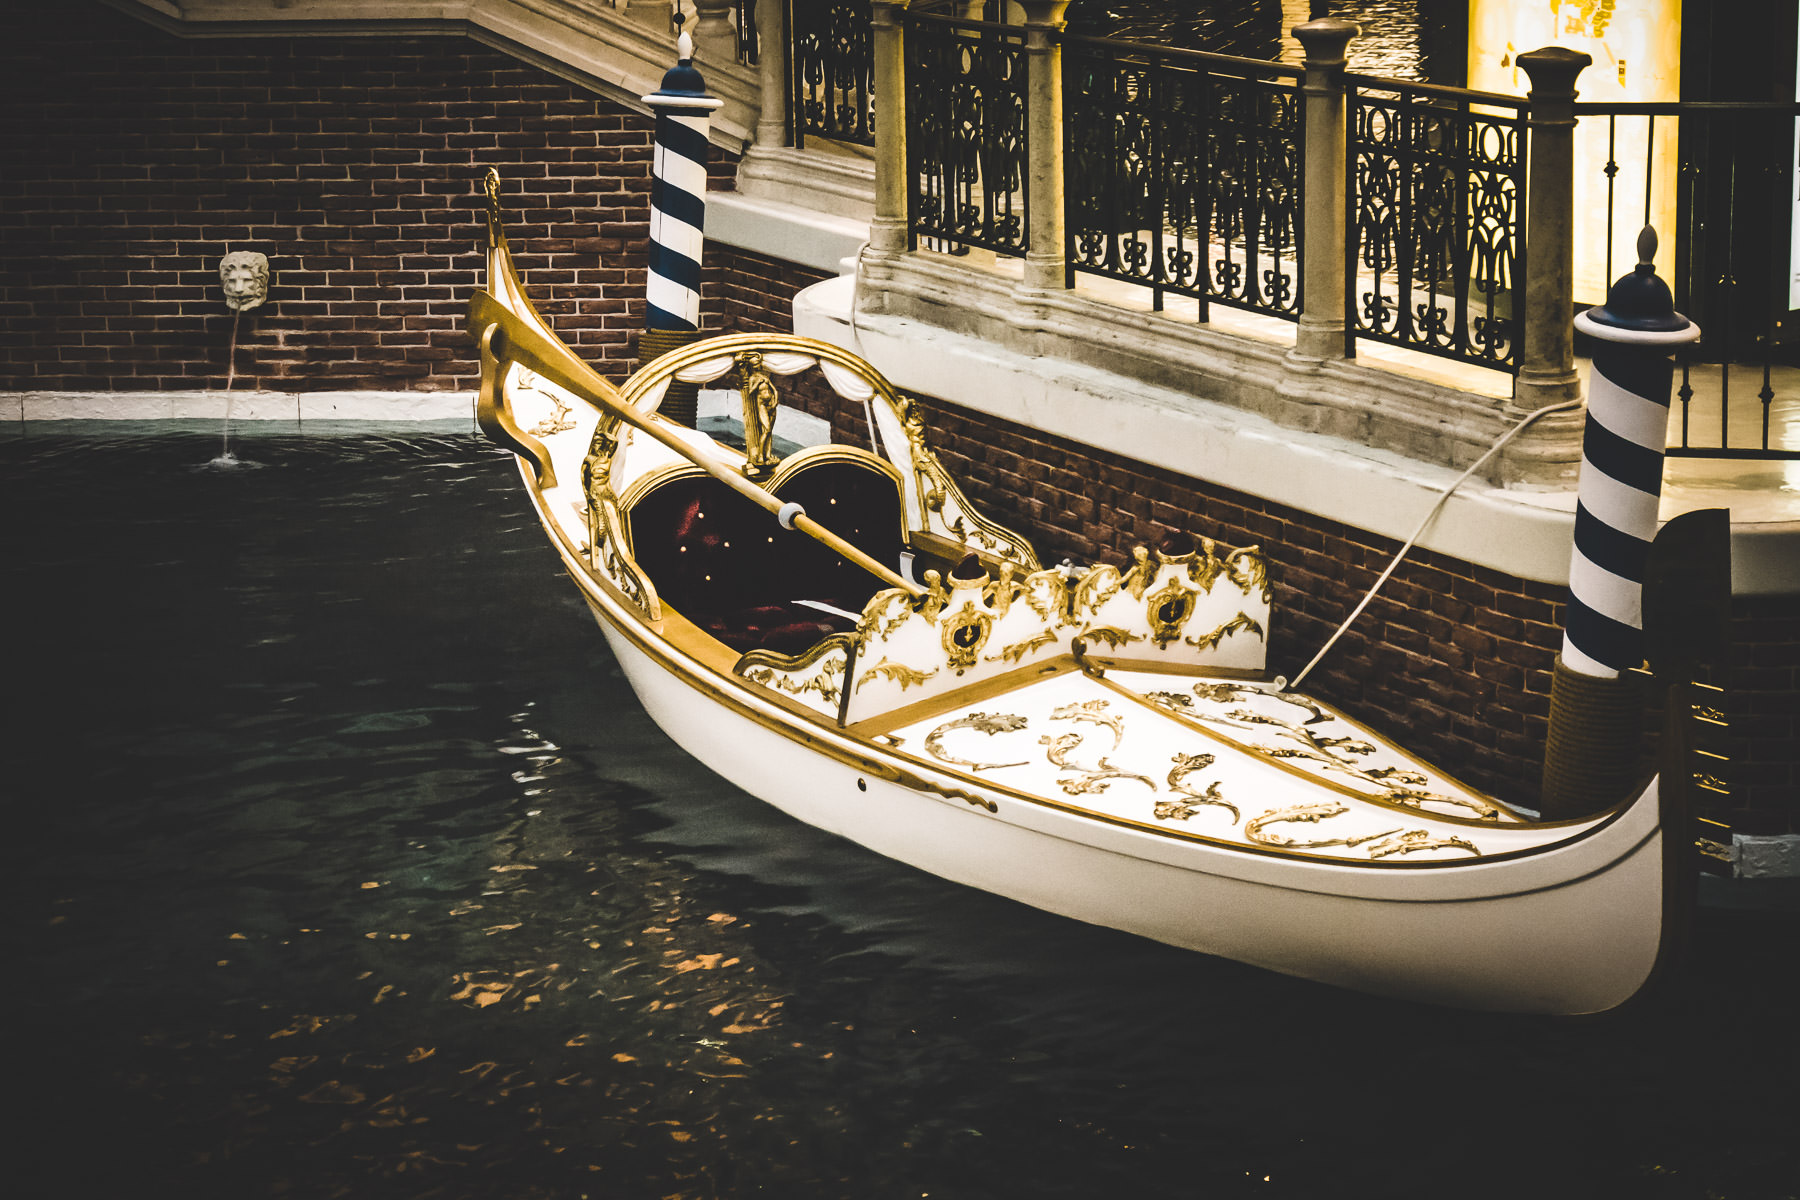 A gondola awaits passengers at the Venetian Las Vegas.